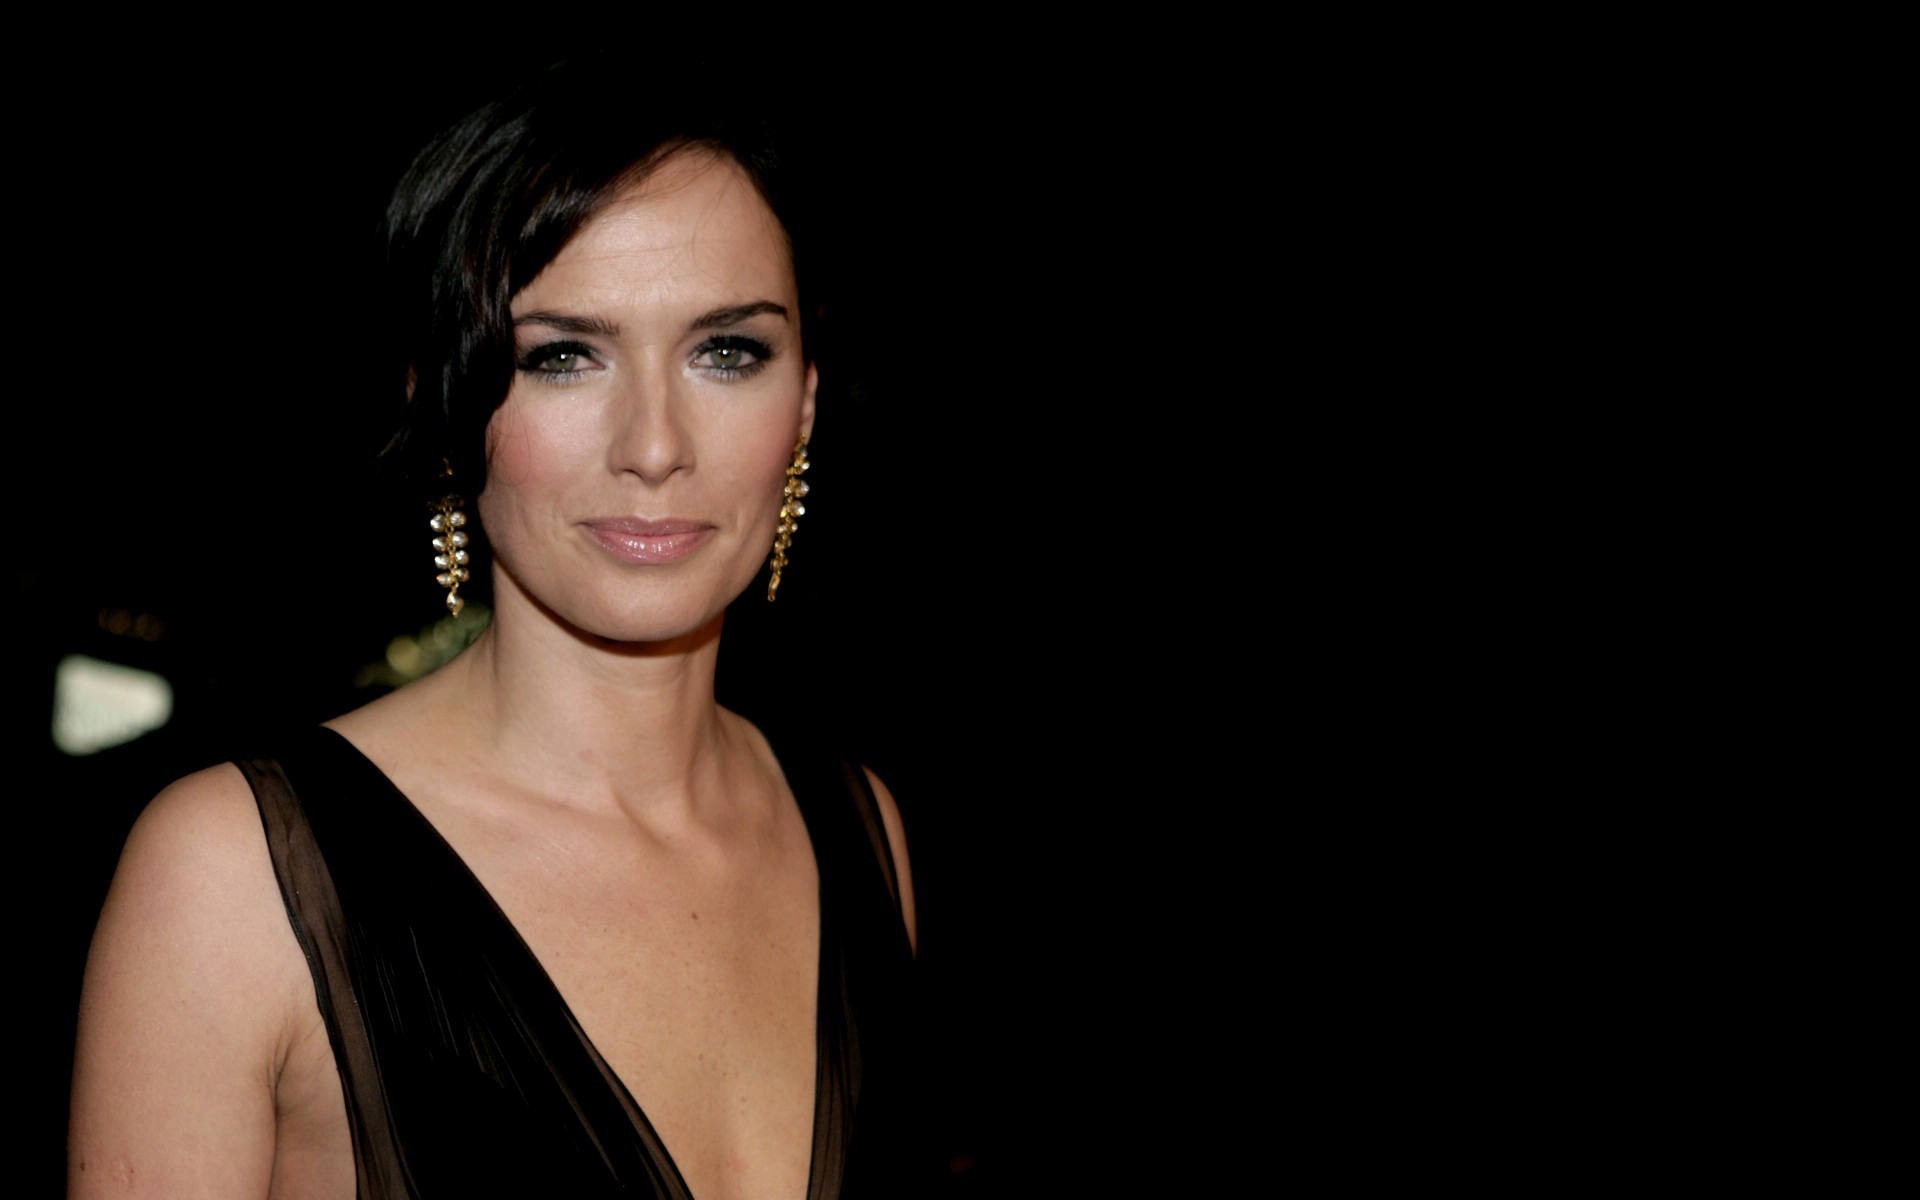 Lena Headey Widescreen for desktop